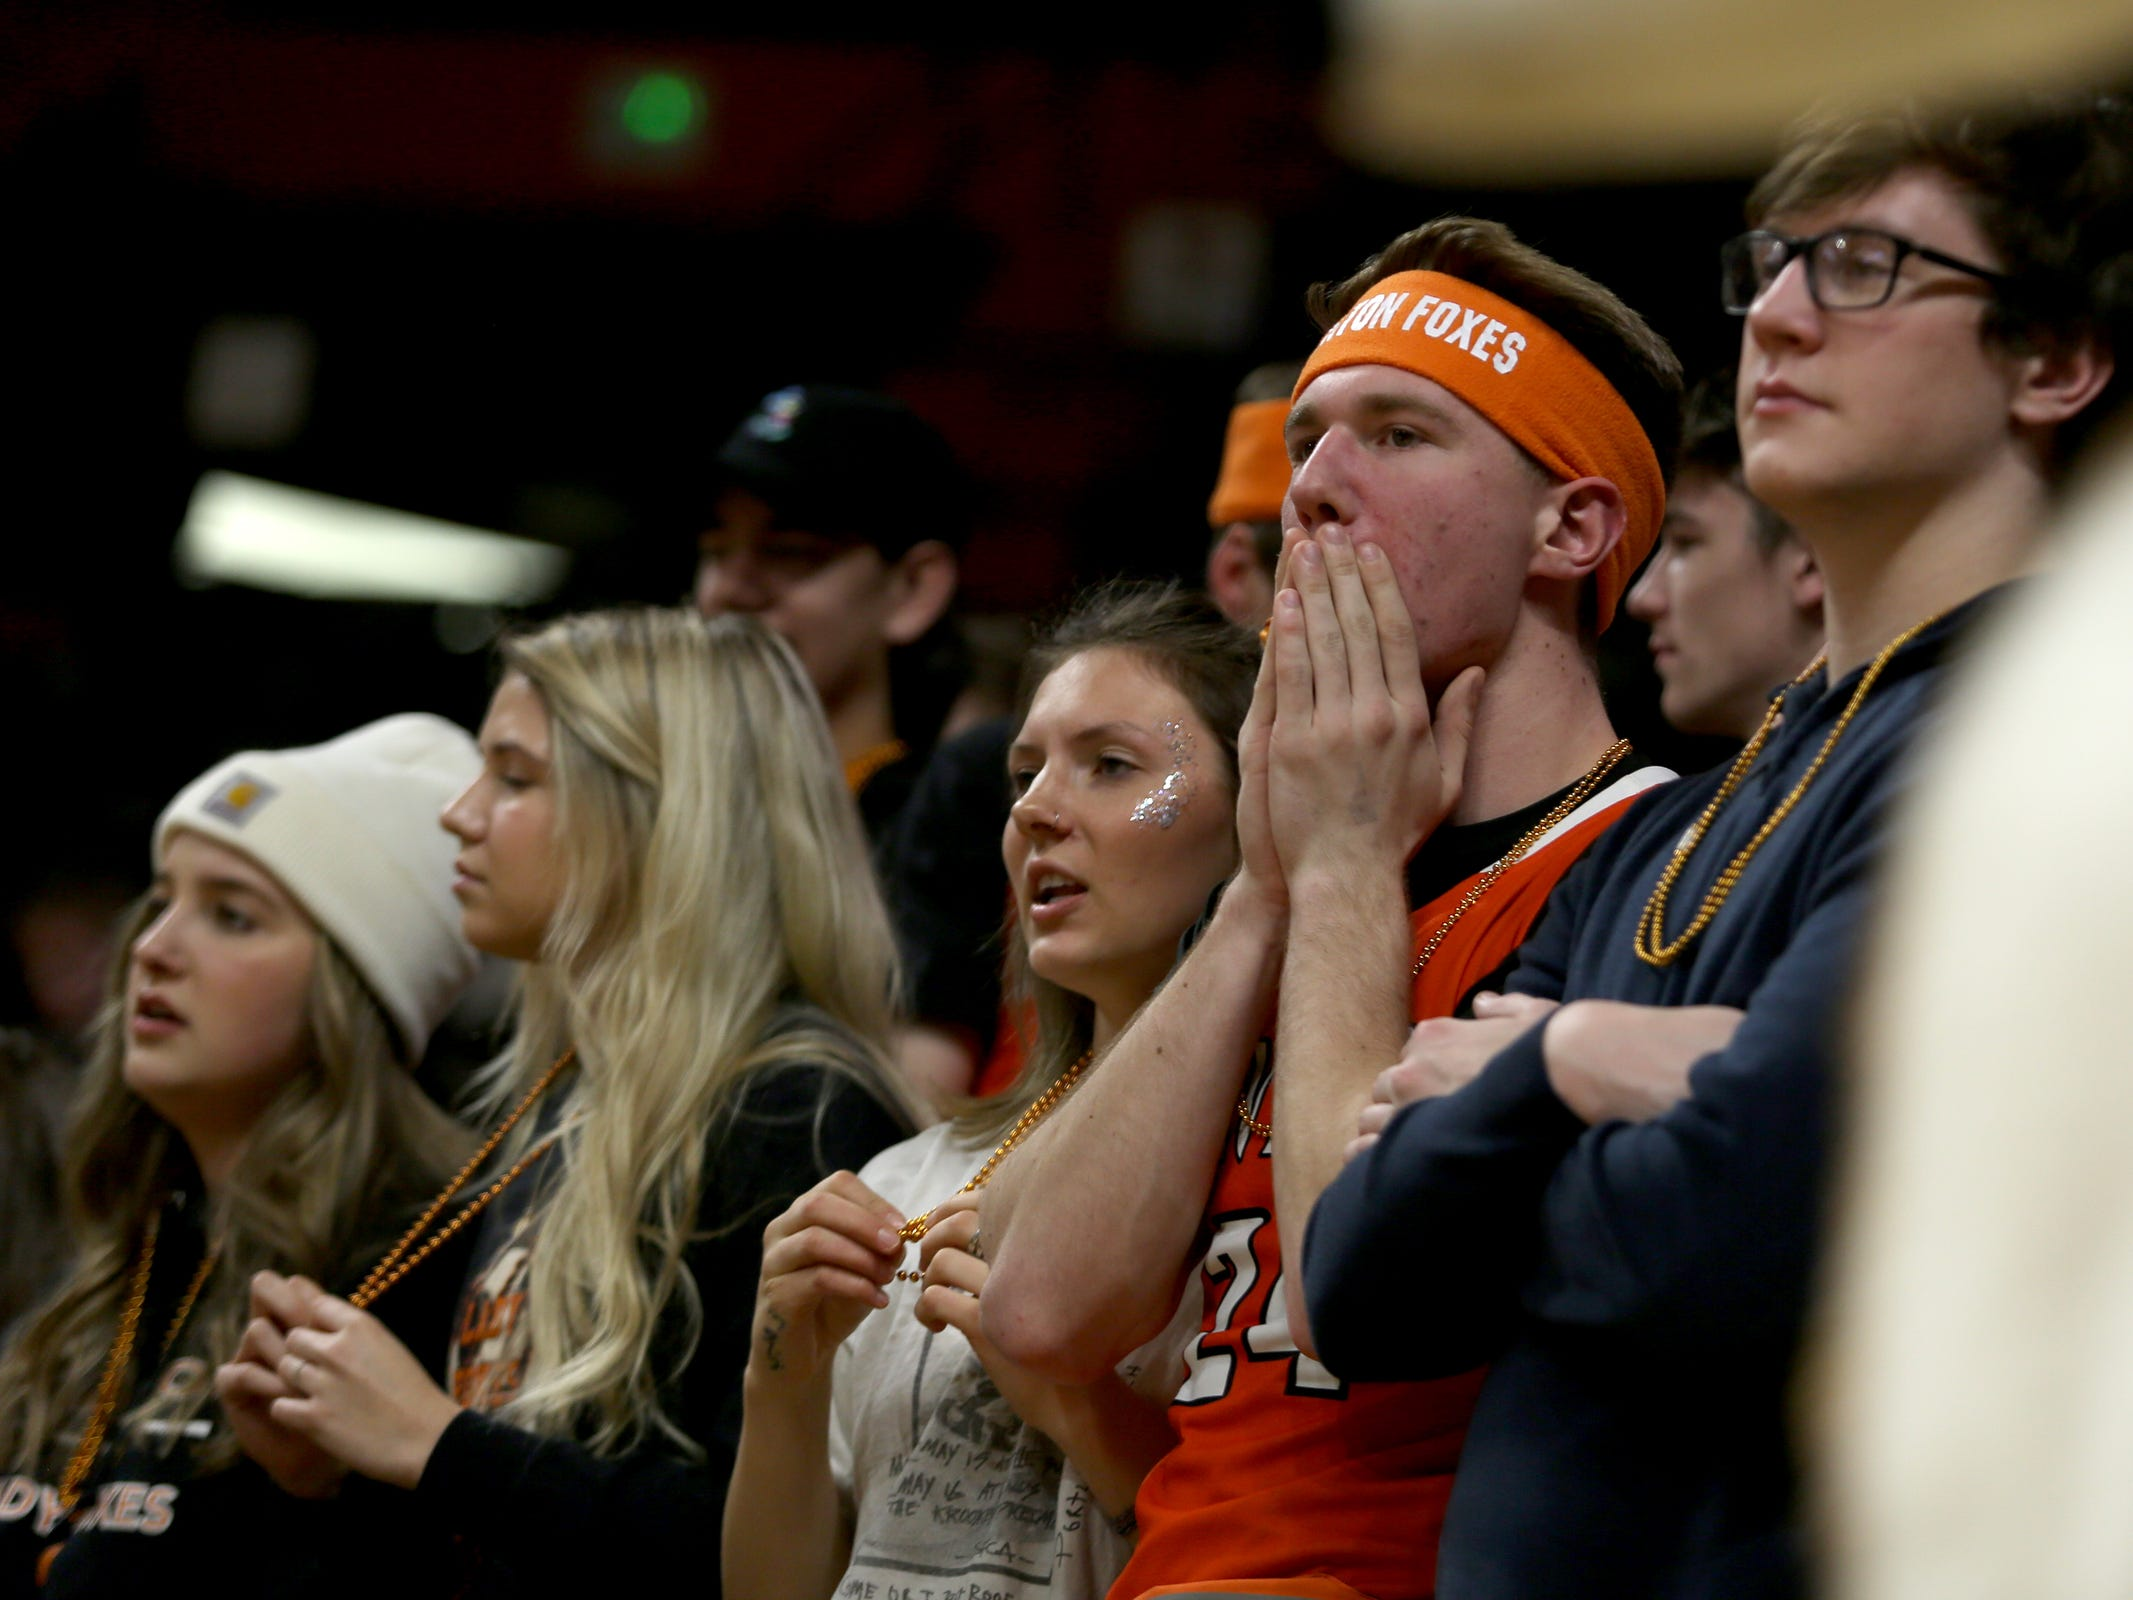 Silverton fans react to a play in the second half of the La Salle Prep vs. Silverton girls basketball game in the OSAA Class 5A quarterfinals at Oregon State University in Corvallis on Thursday, March 7, 2019. La Salle Prep won the game 57-46.